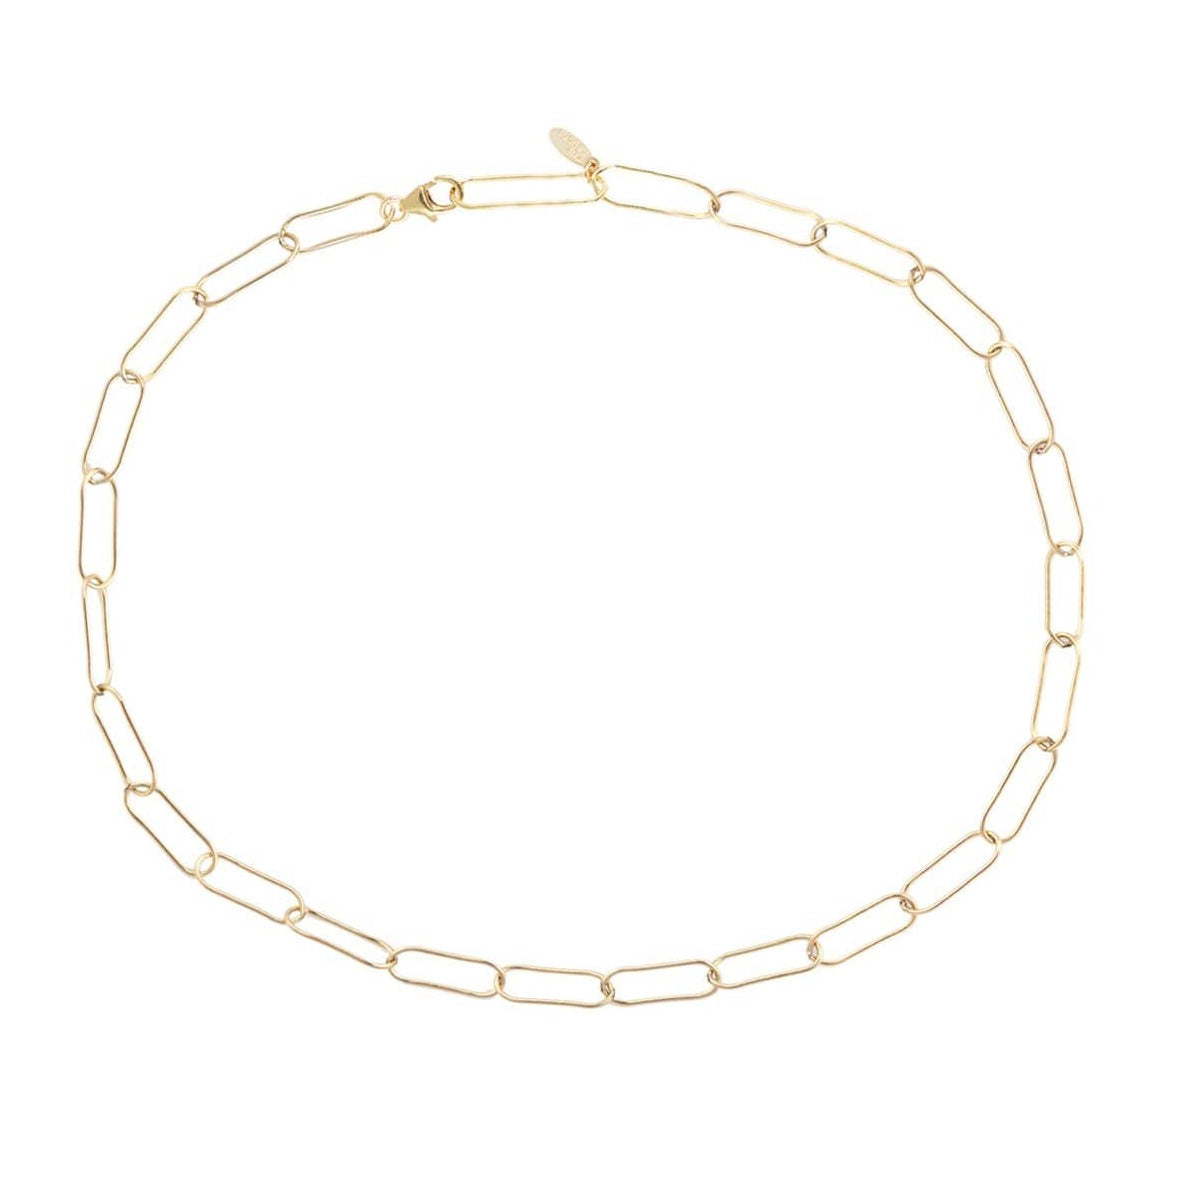 Kris Nations Large Link Chain Choker